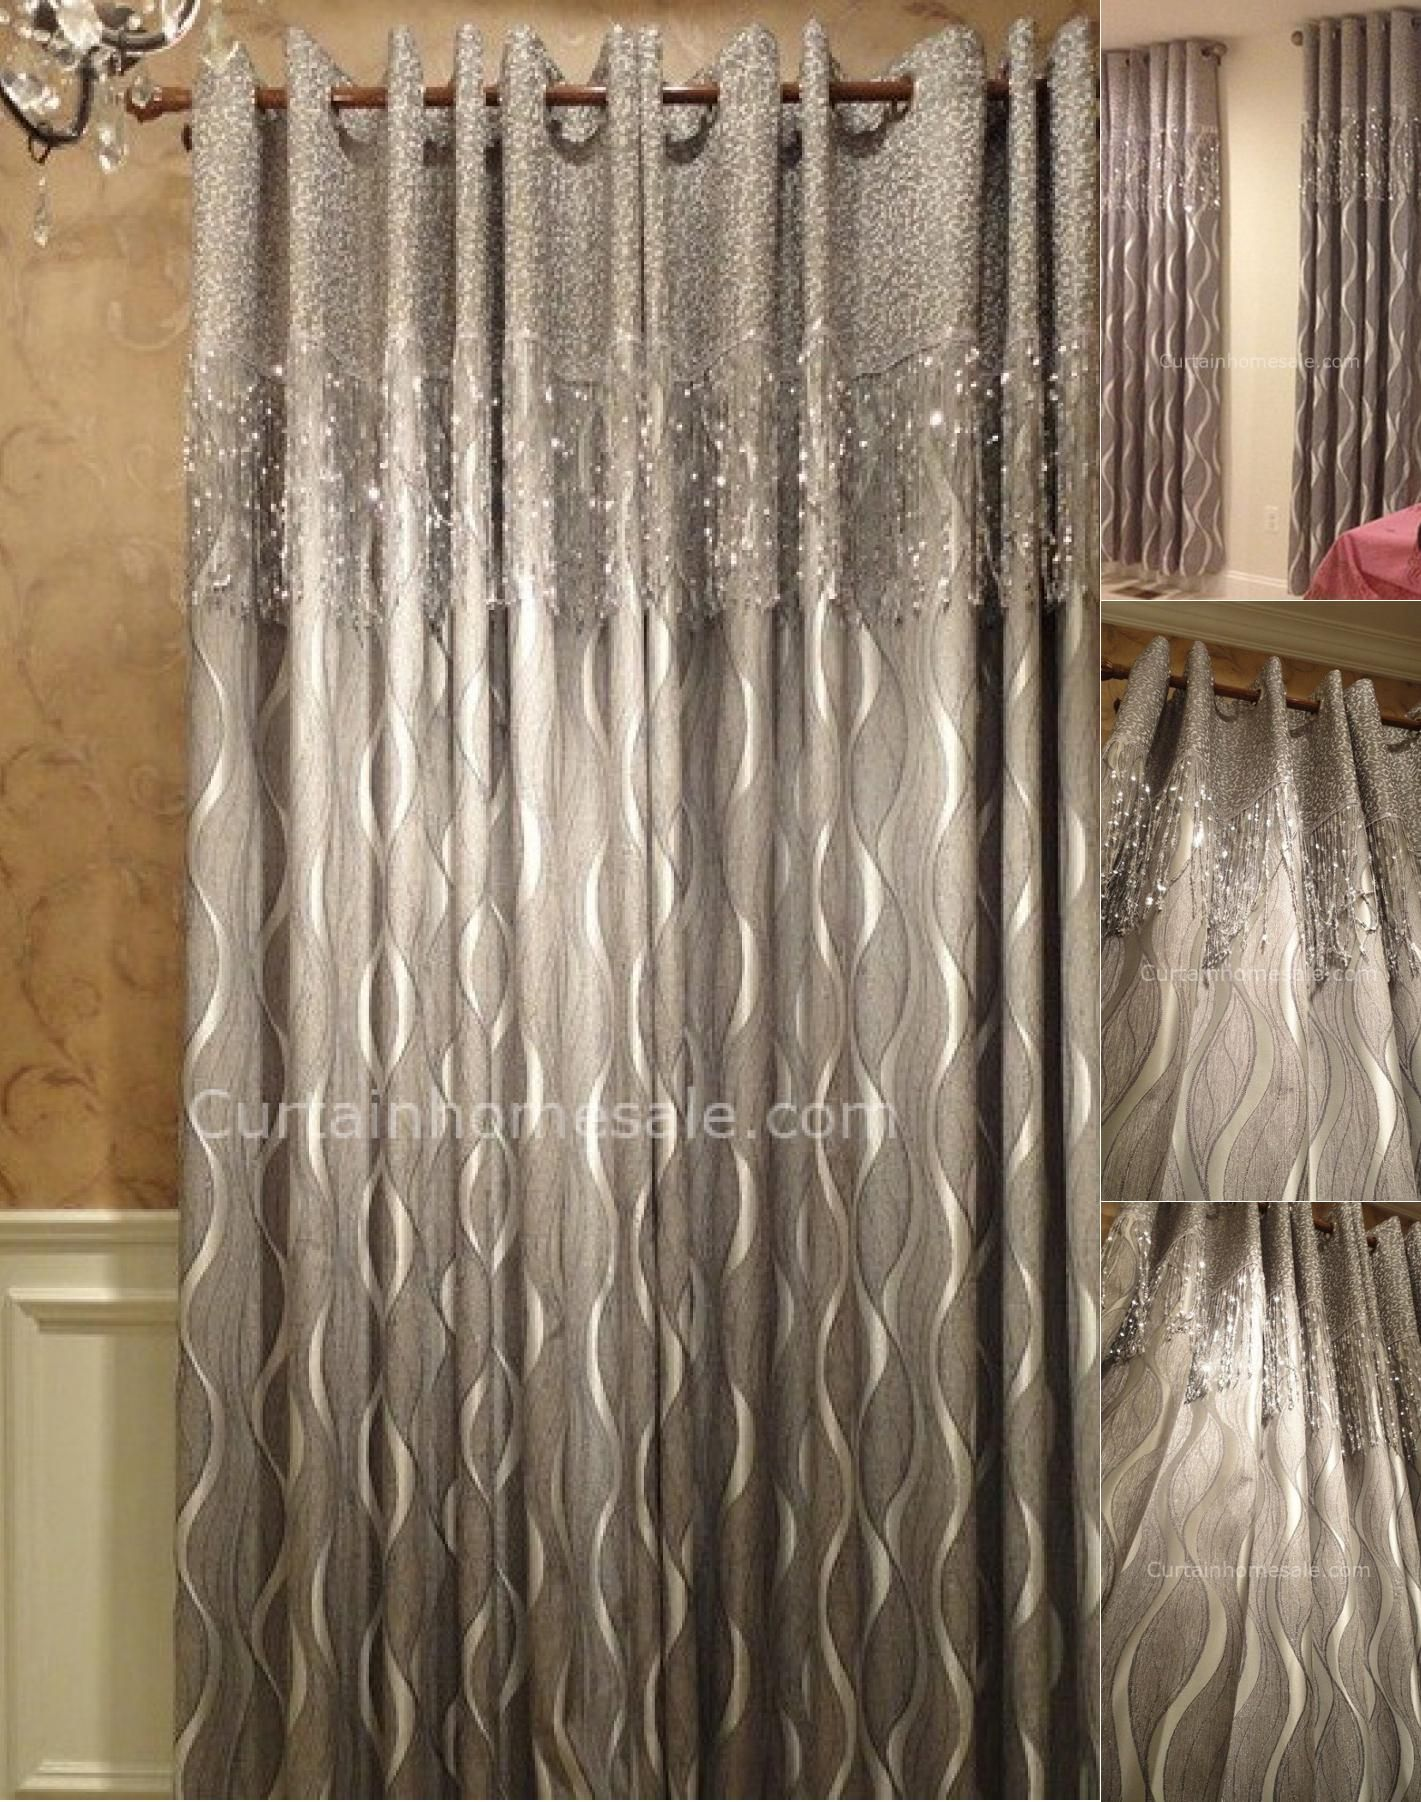 in ideas cooking curtain home classy attractive curtains and designs for kitchen idea interior designer creative space design